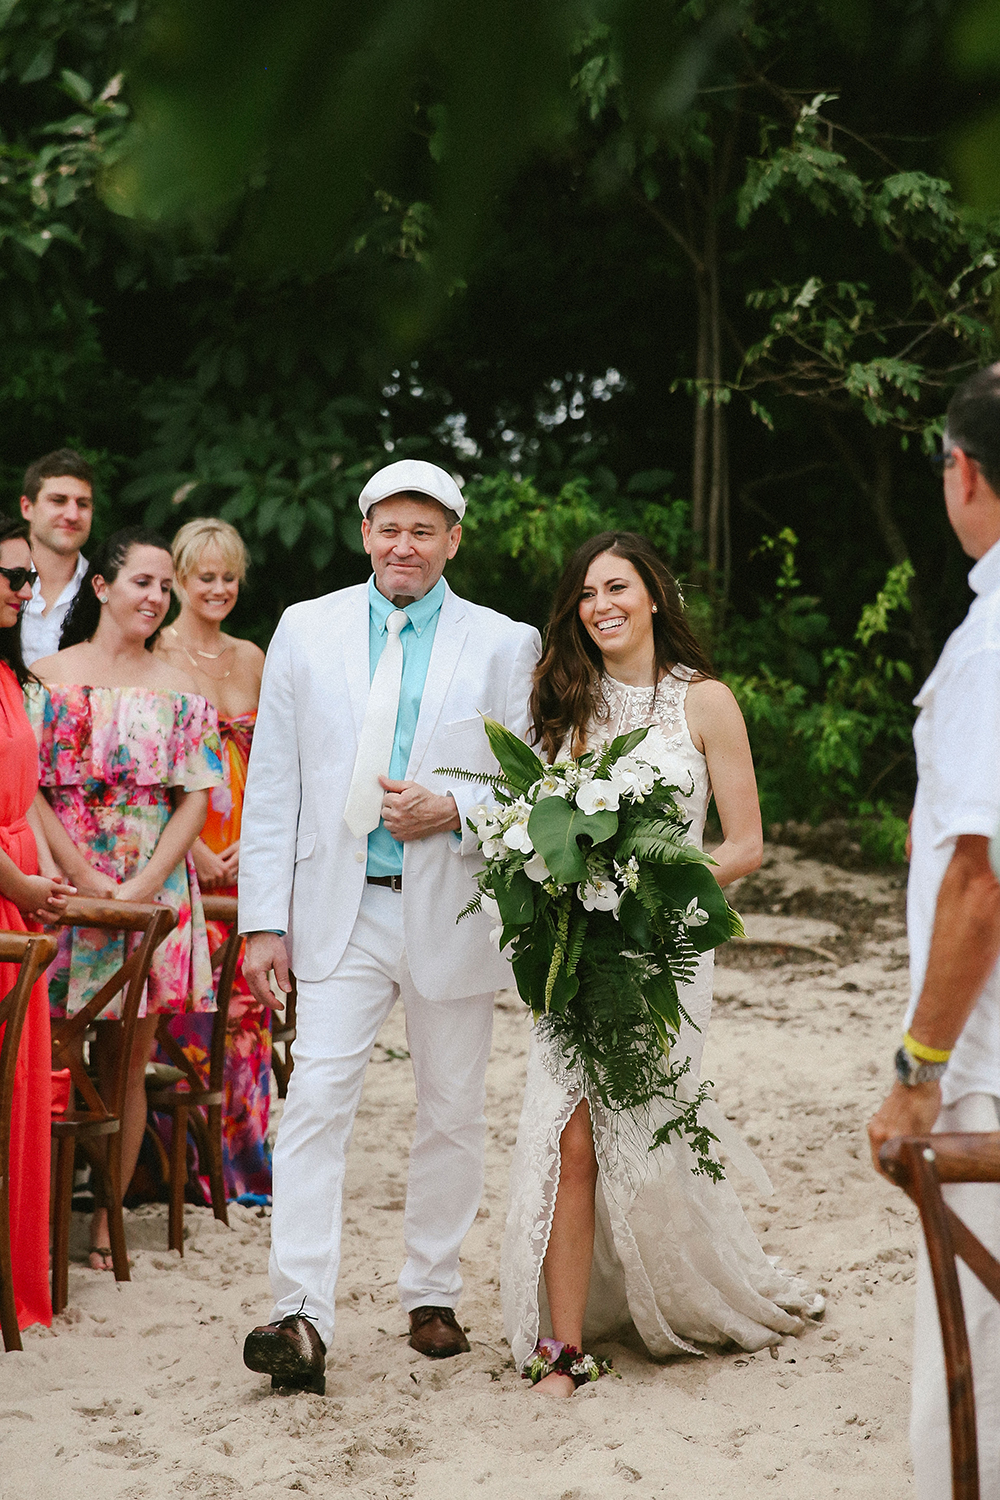 ceremony processionals - photo by W and E Photographie https://ruffledblog.com/costa-rica-destination-wedding-with-lots-of-tropical-details